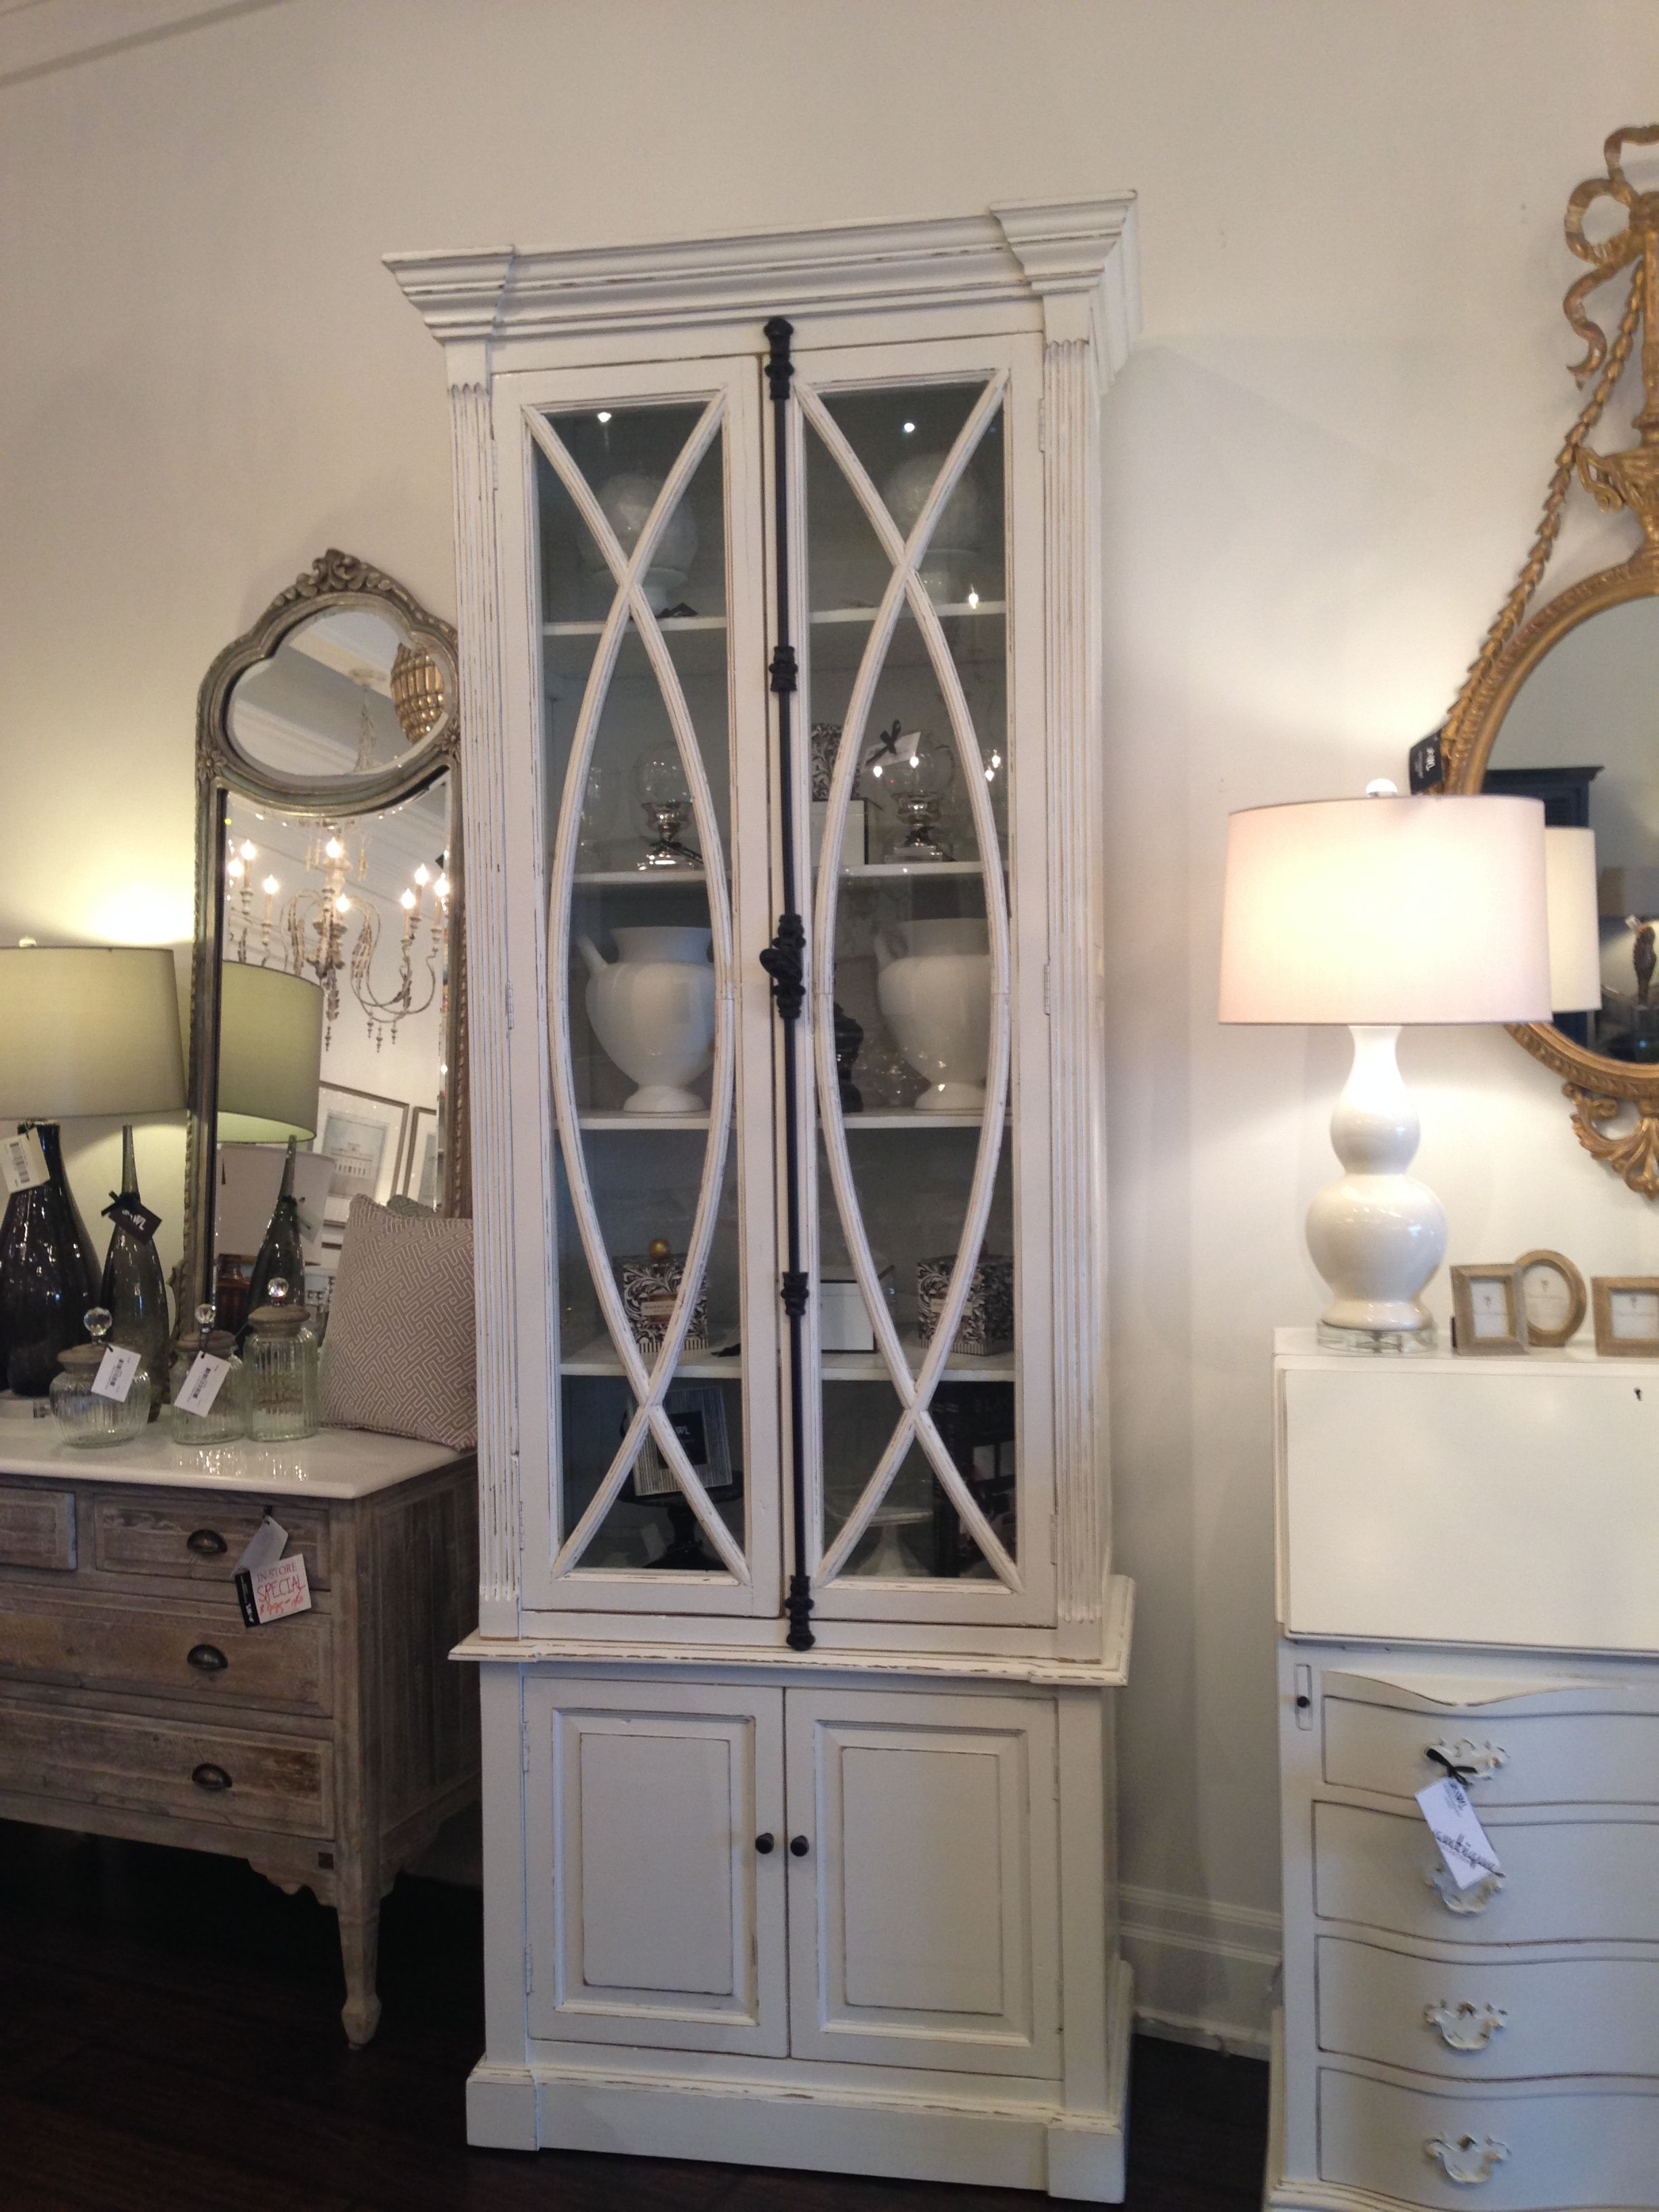 White painted distressed 2 door cabinet with fretwork beautiful